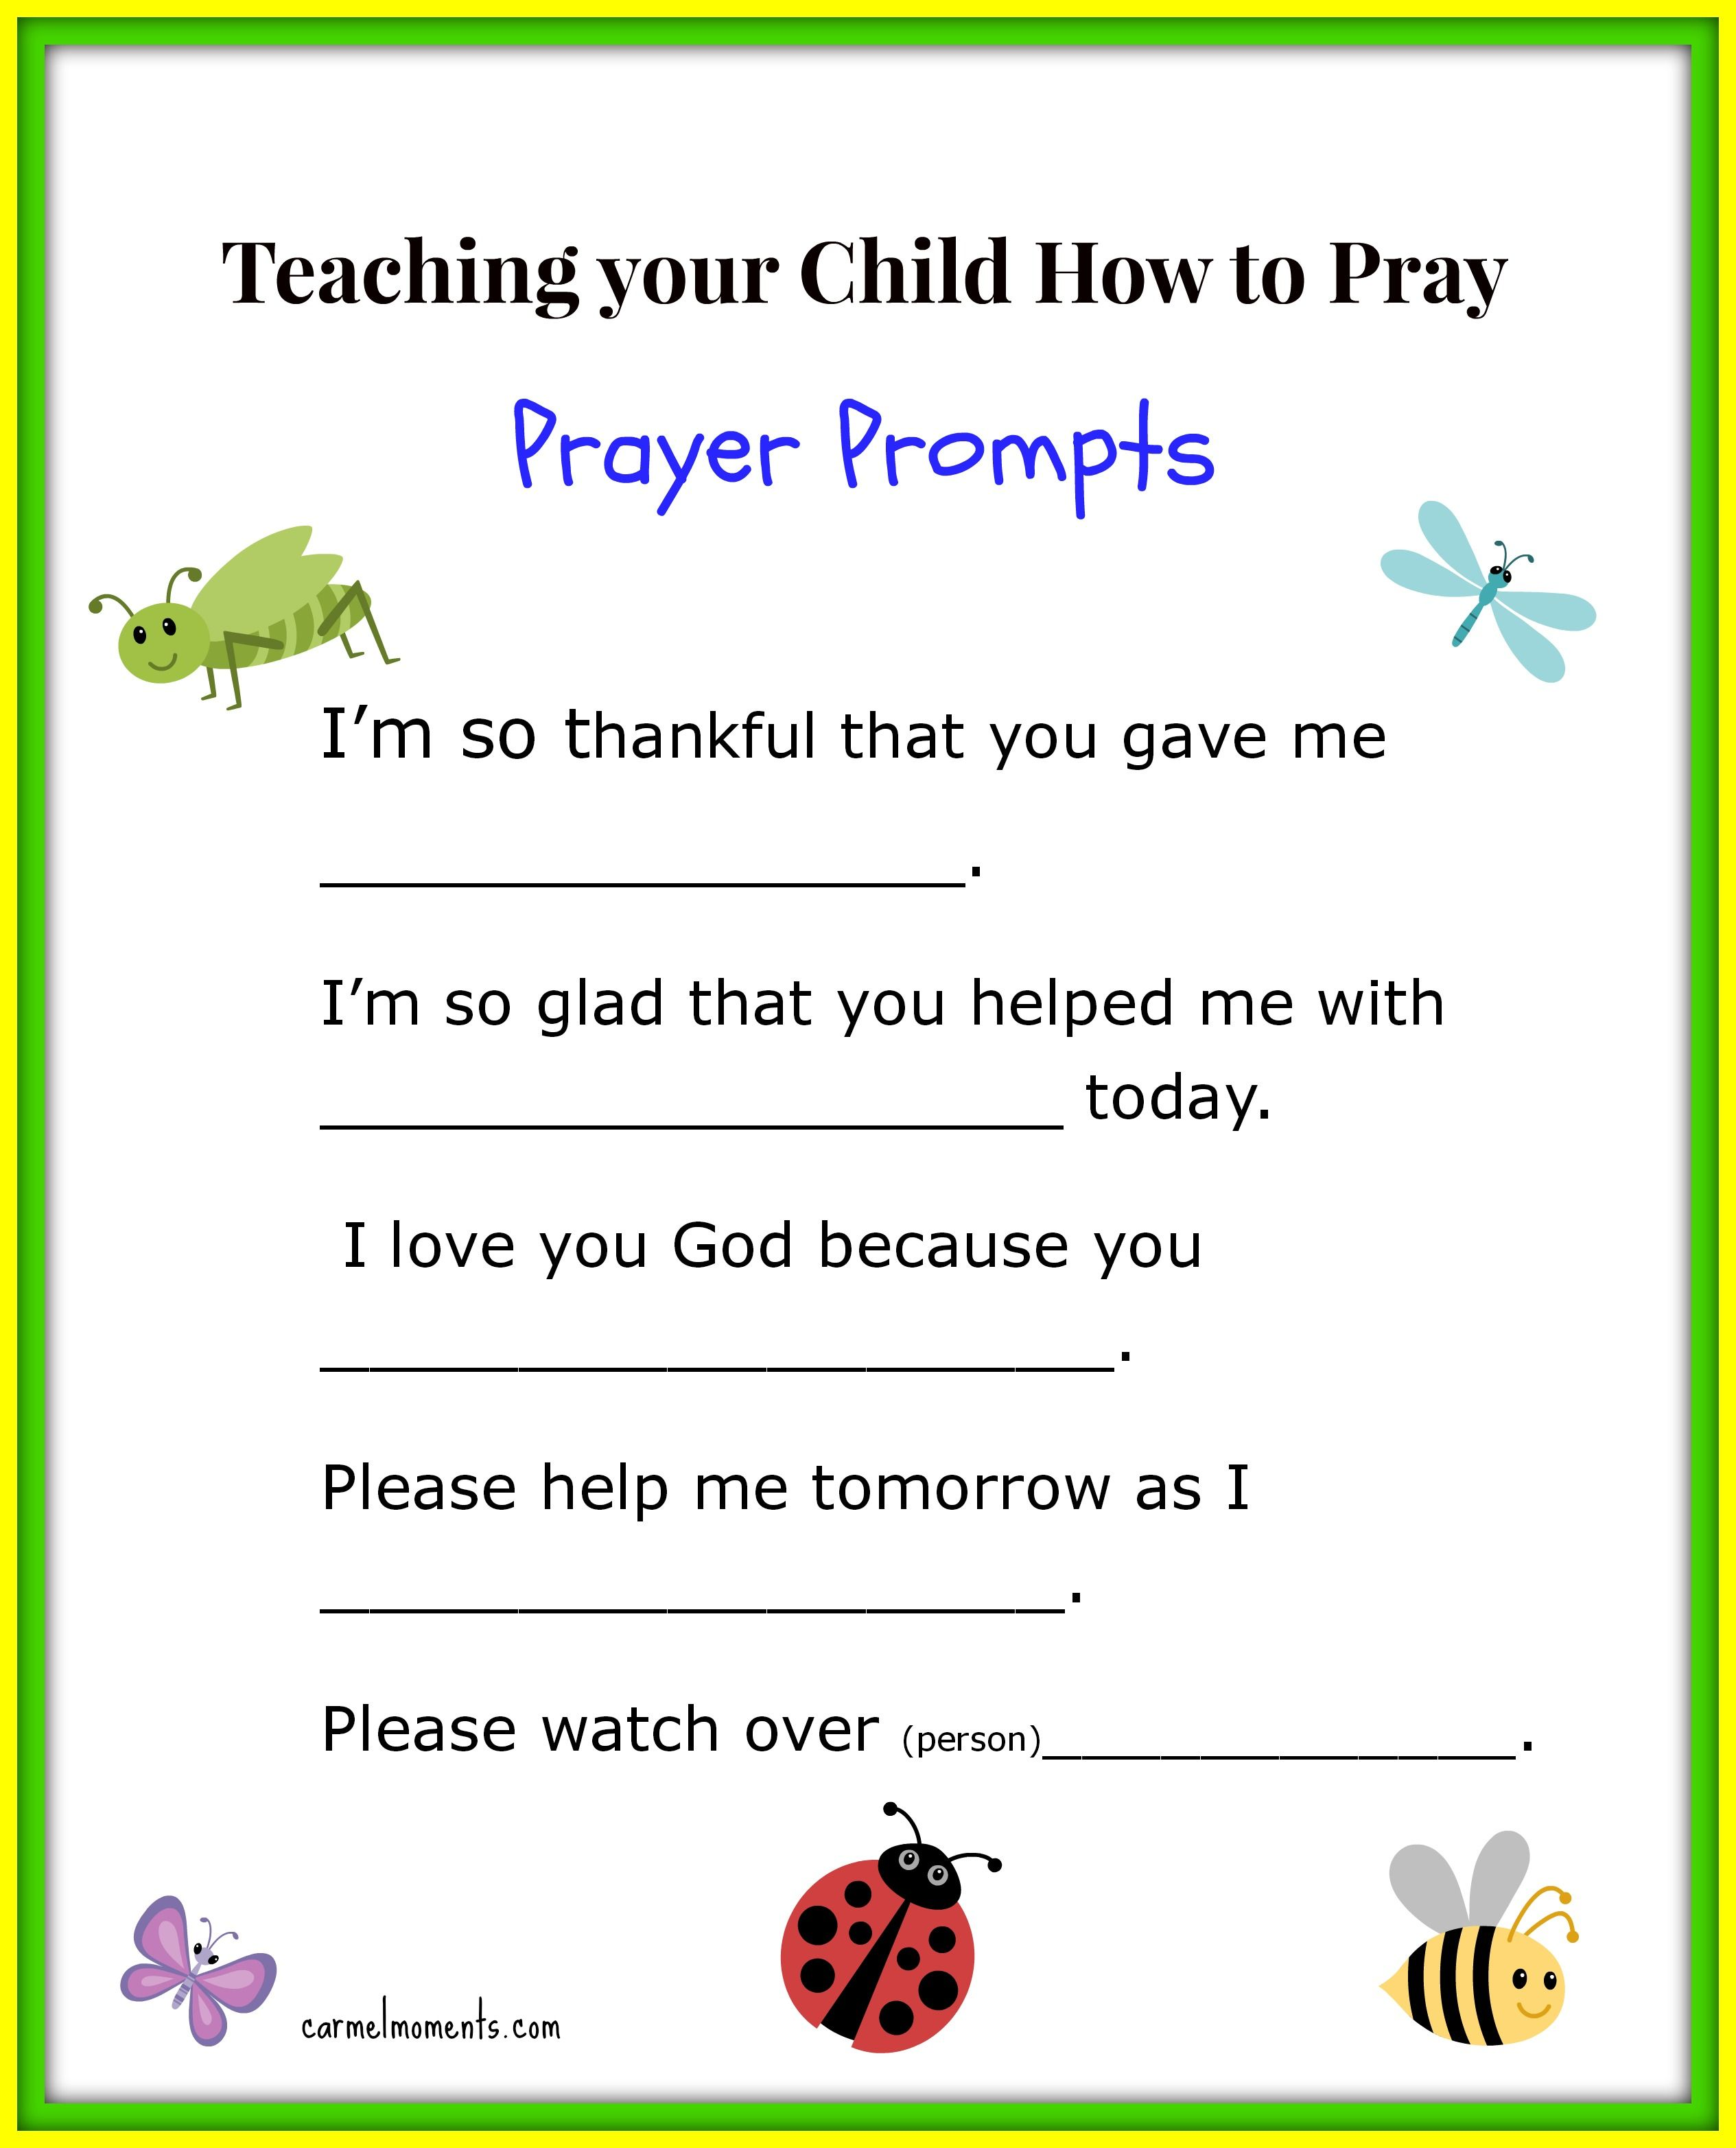 Prayer Prompts For Your Child